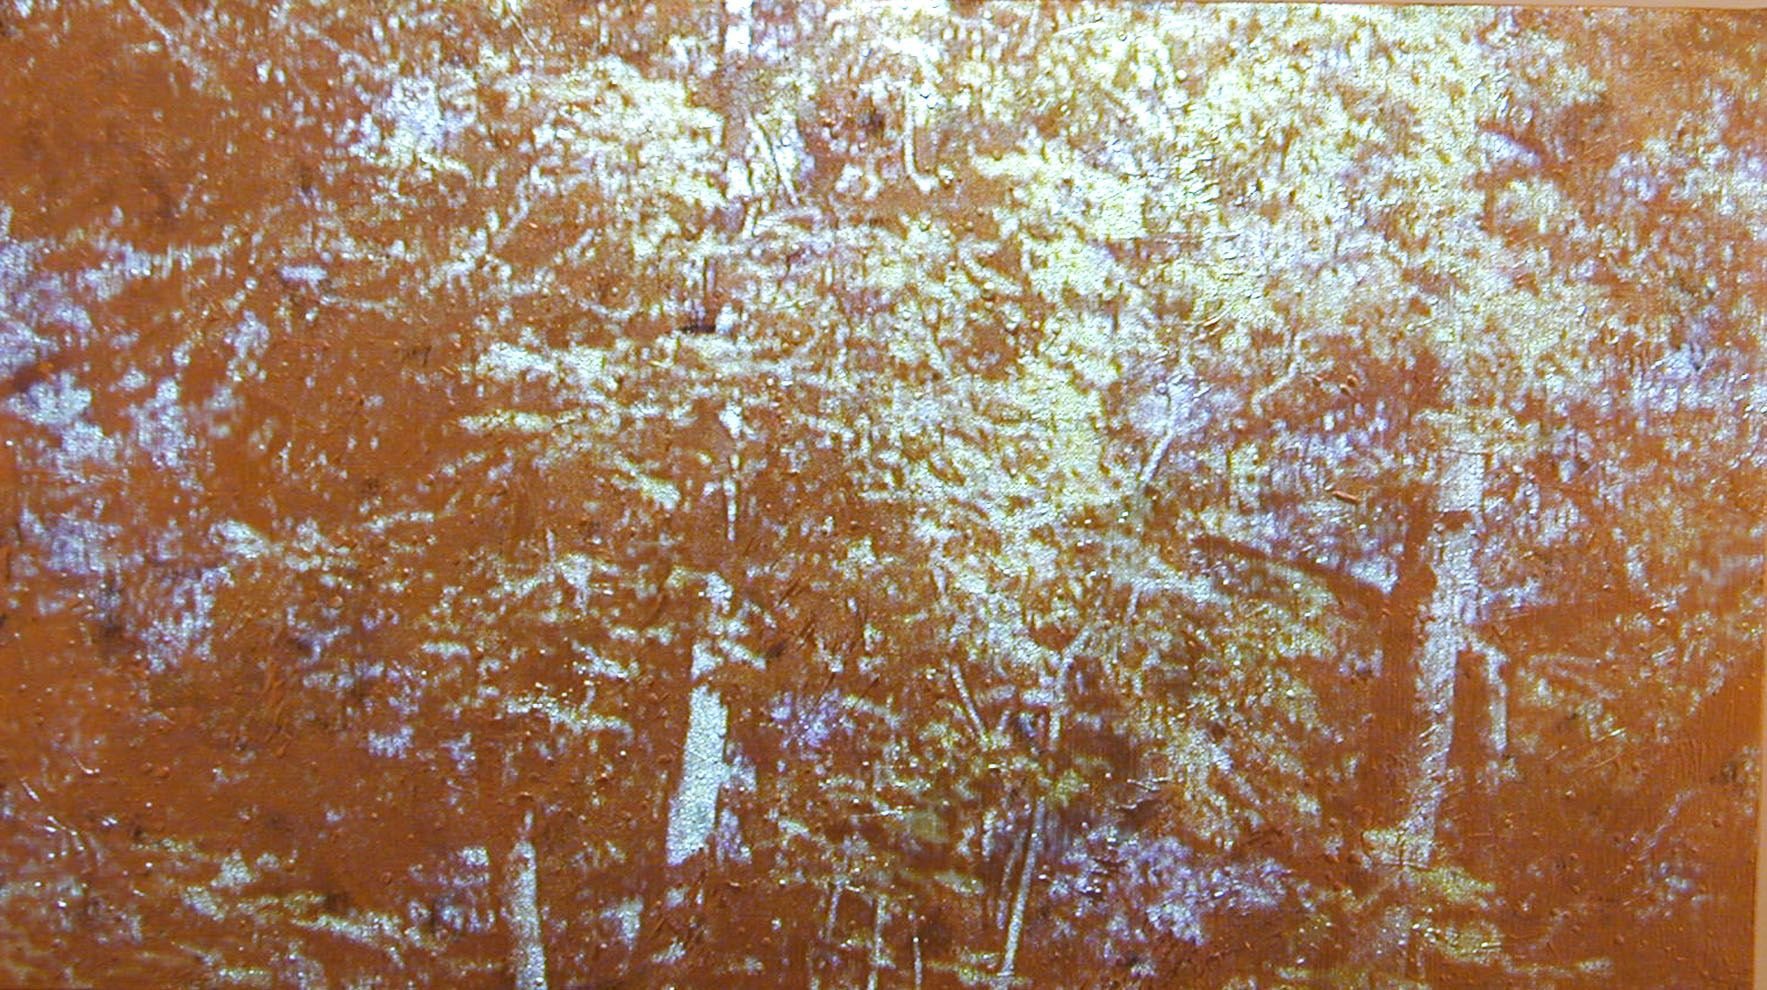 Gold / Landscape #3, 2003, Video projection, oil and enamel on linen